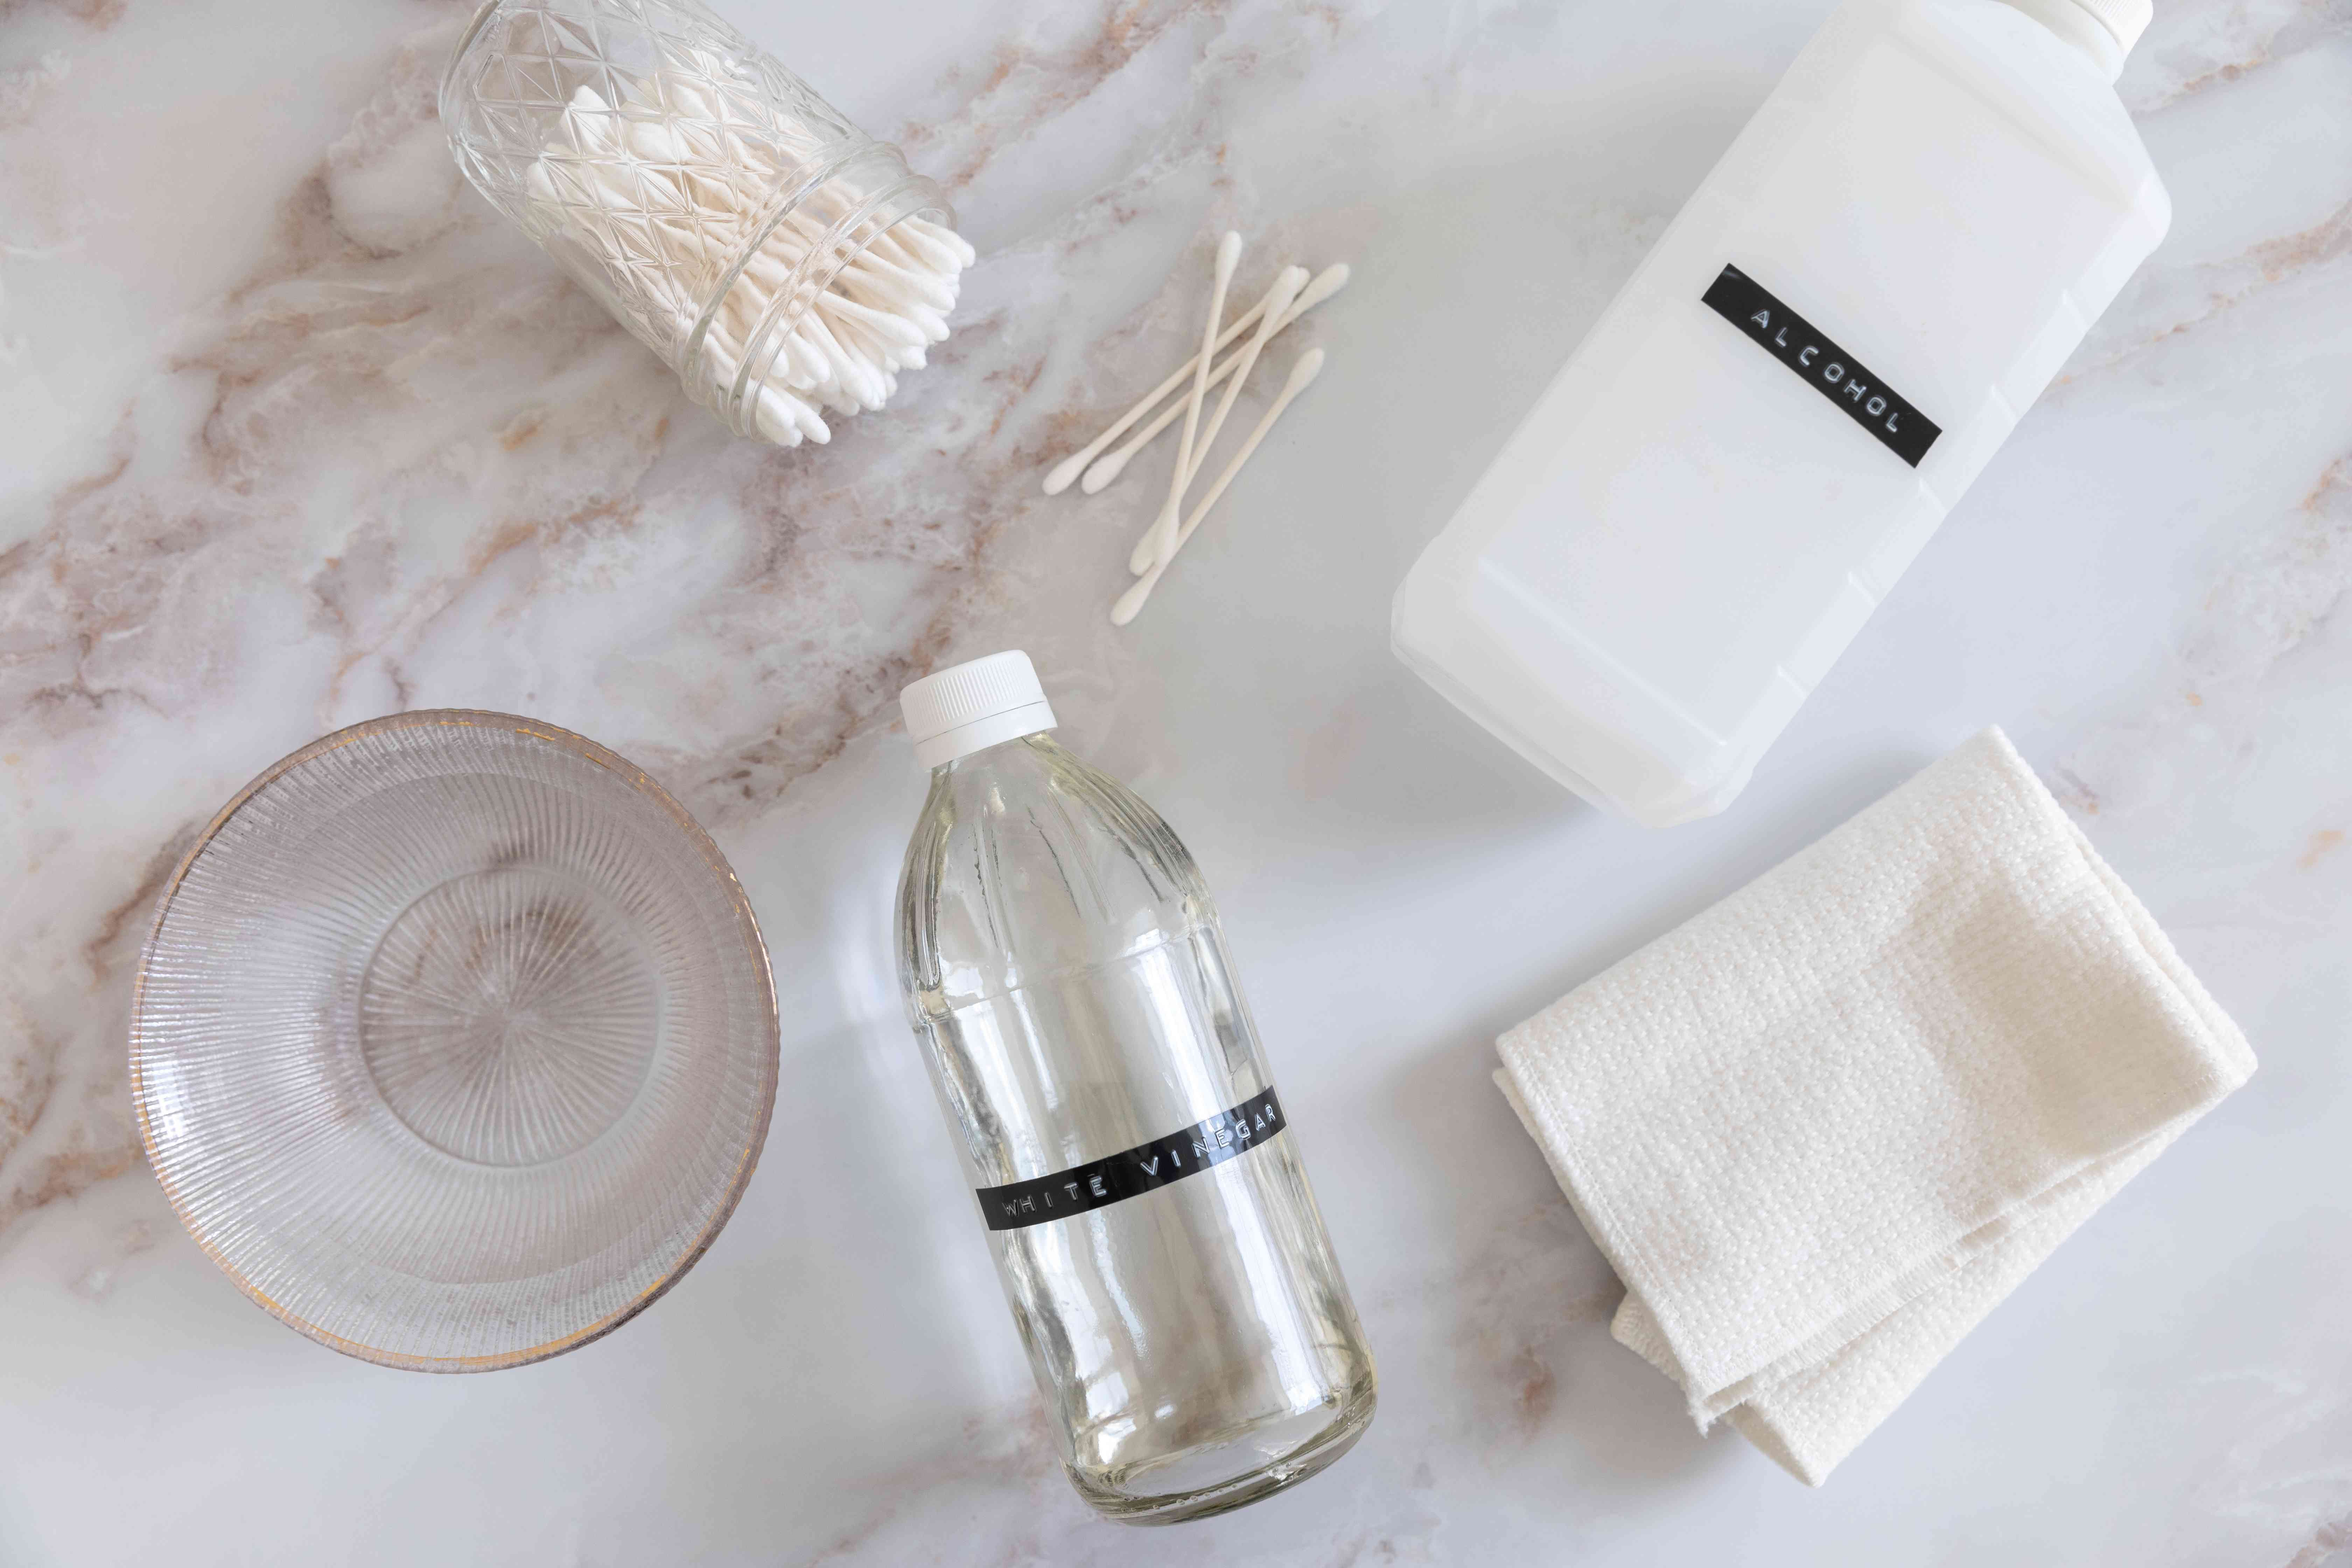 Materials and tools to deep clean oil diffuser on white marbled surface